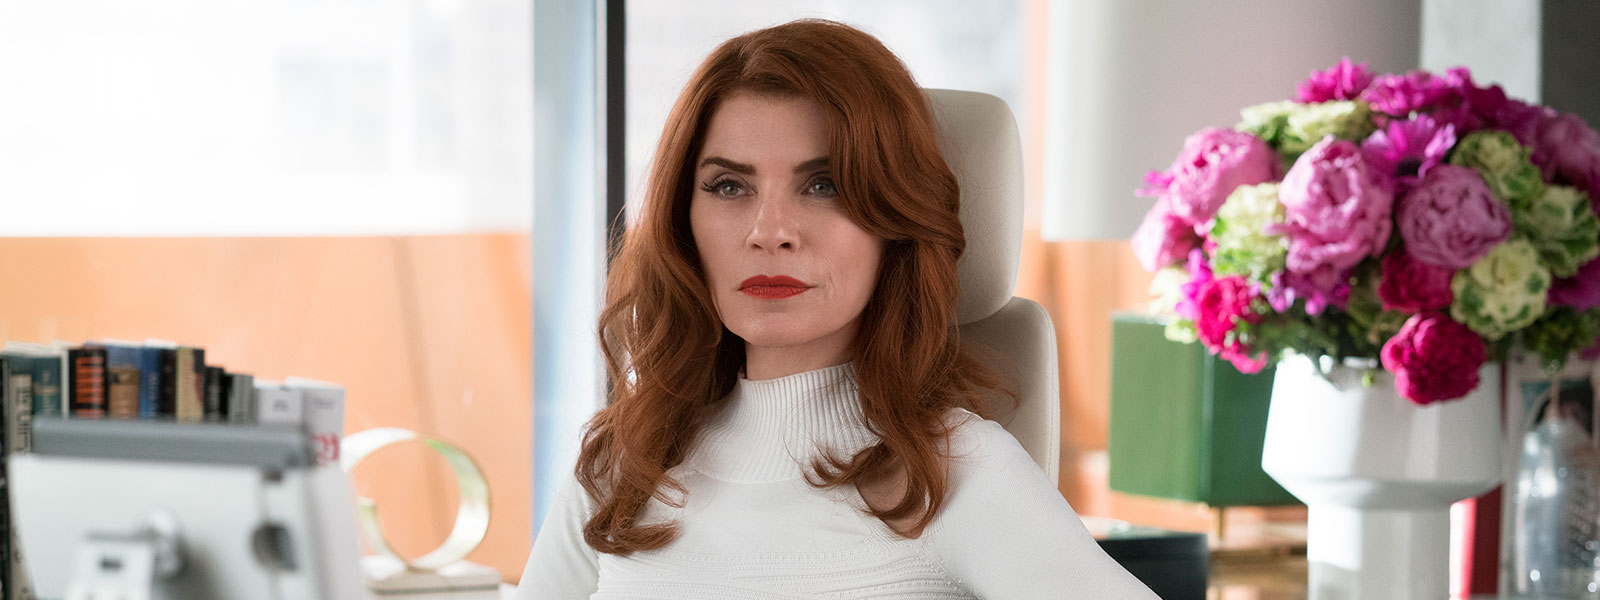 dietland-episode-102-kitty-margulies-pre-800×600